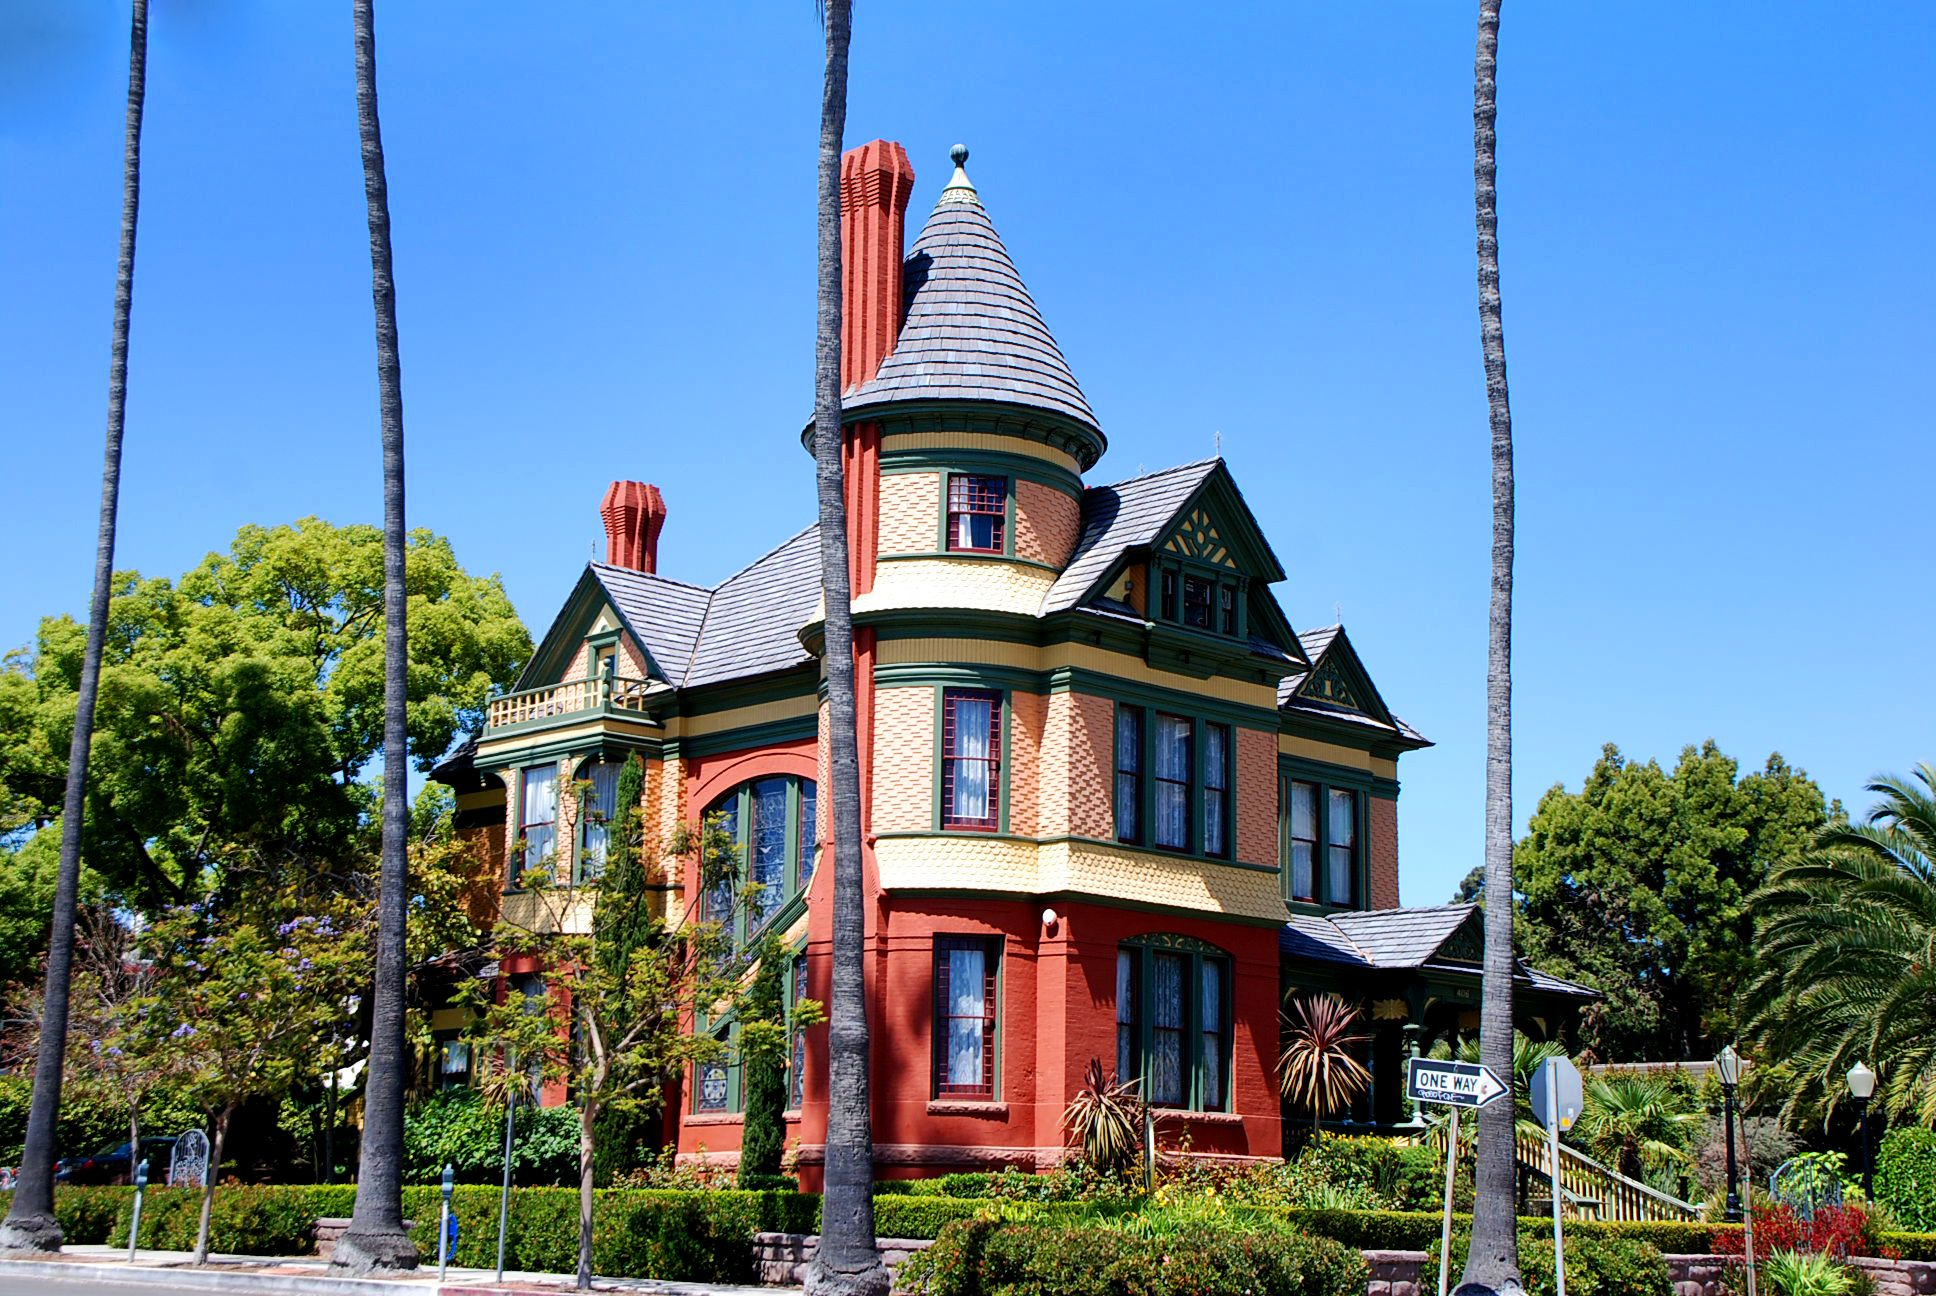 Our Magnificent Stay At Britt Scripps Inn In San Diego California Victorian Style Homes Victorian Homes Queen Anne House